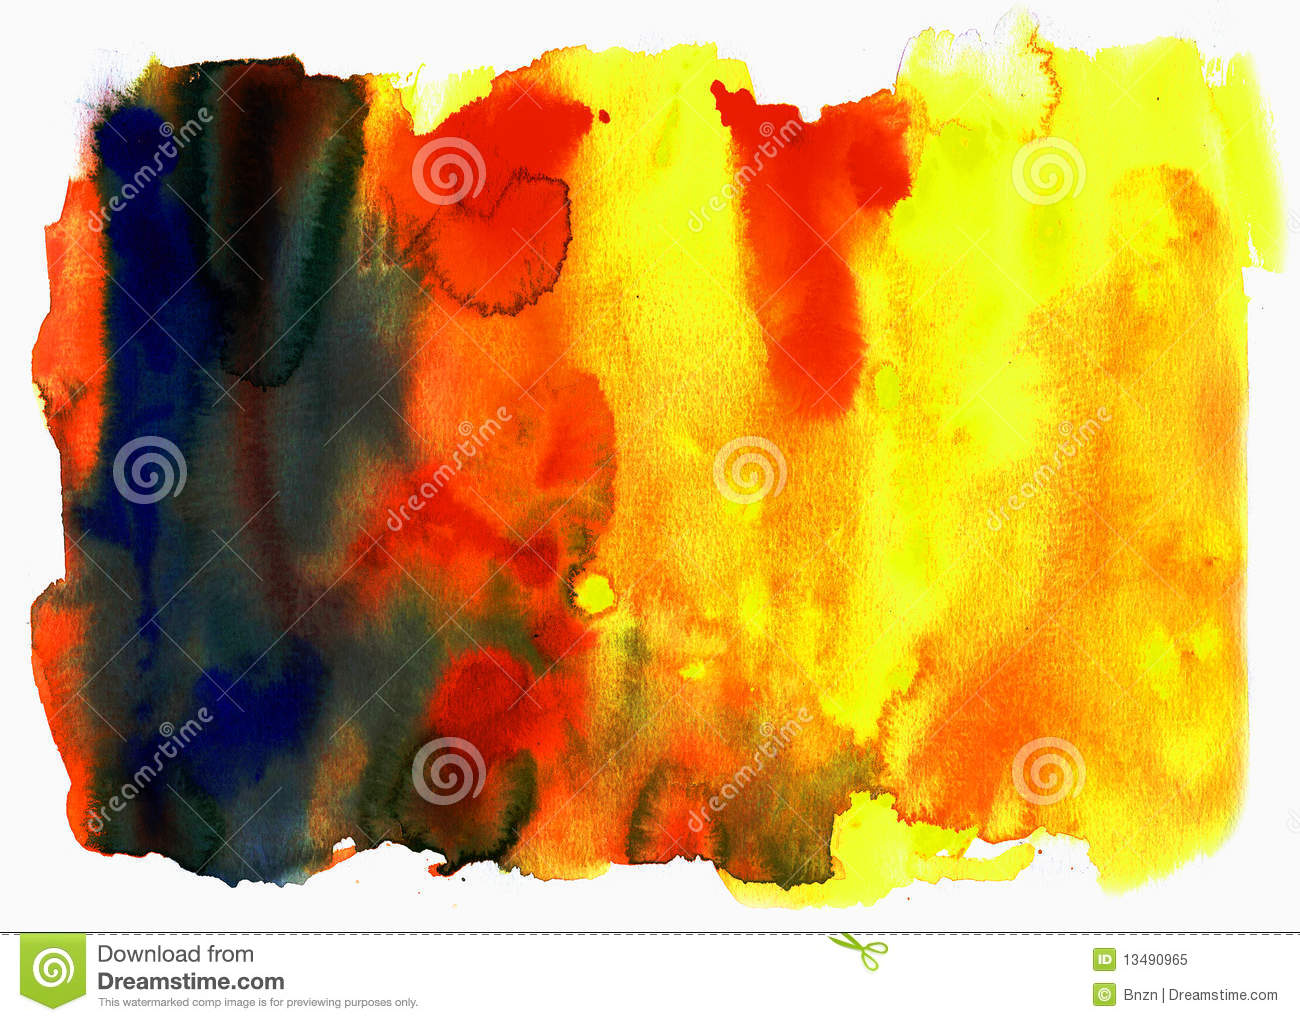 Water color textures